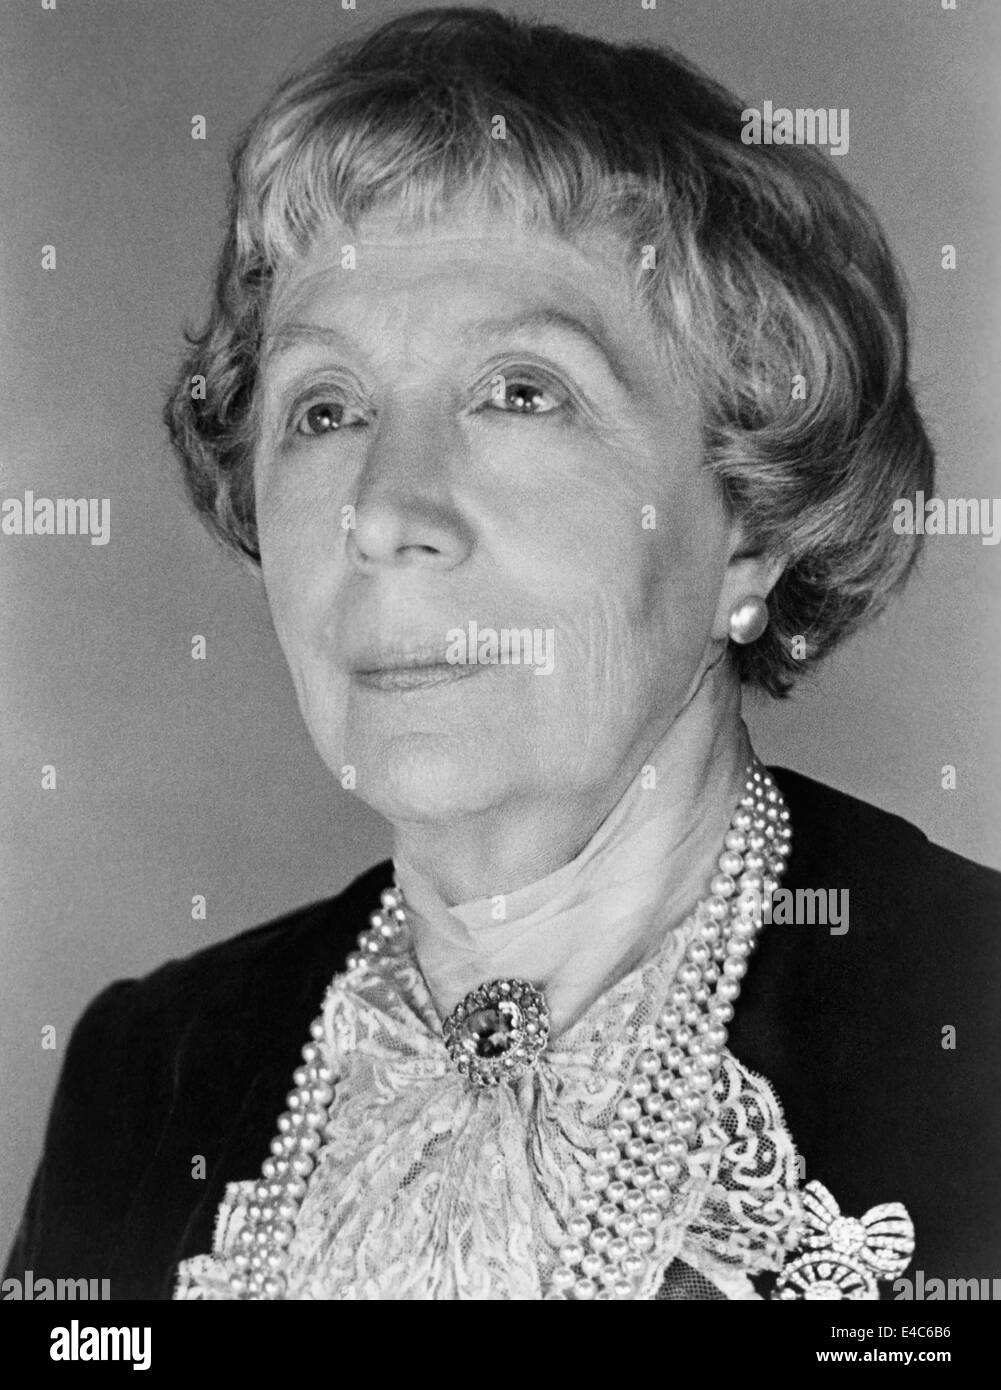 edith evans bullfighteredith evans titanic, edith evans actress, edith evans a handbag, edith evans asbury, edith evans movies, edith evans the whisperers, edith evans imdb, edith evans actor, edith evans quotes, edith evans films, edith evans youtube, edith evans kenneth williams, edith evans lady bracknell, edith evans hossell, edith evans interview, edith evans obituary, edith evans bullfighter, edith evans scrooge, edith evans michael redgrave, edith evans images